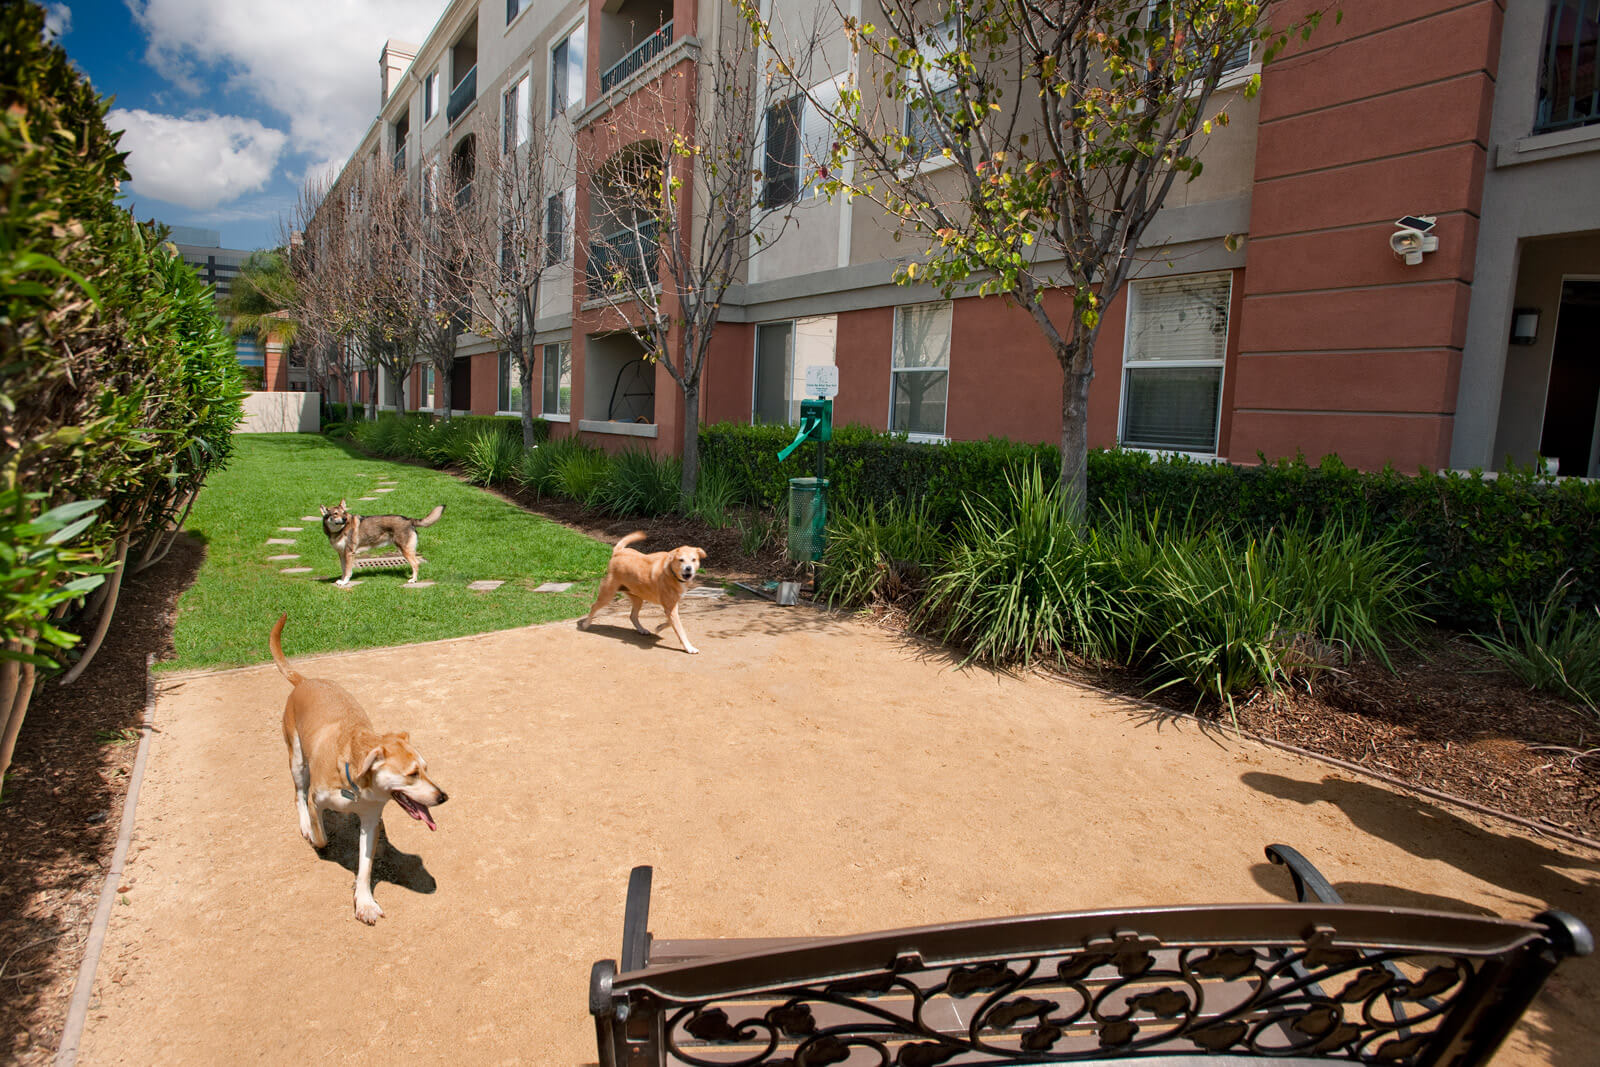 Pet-Friendly Community with Enclosed Dog Run at Windsor at Main Place, Orange, 92868